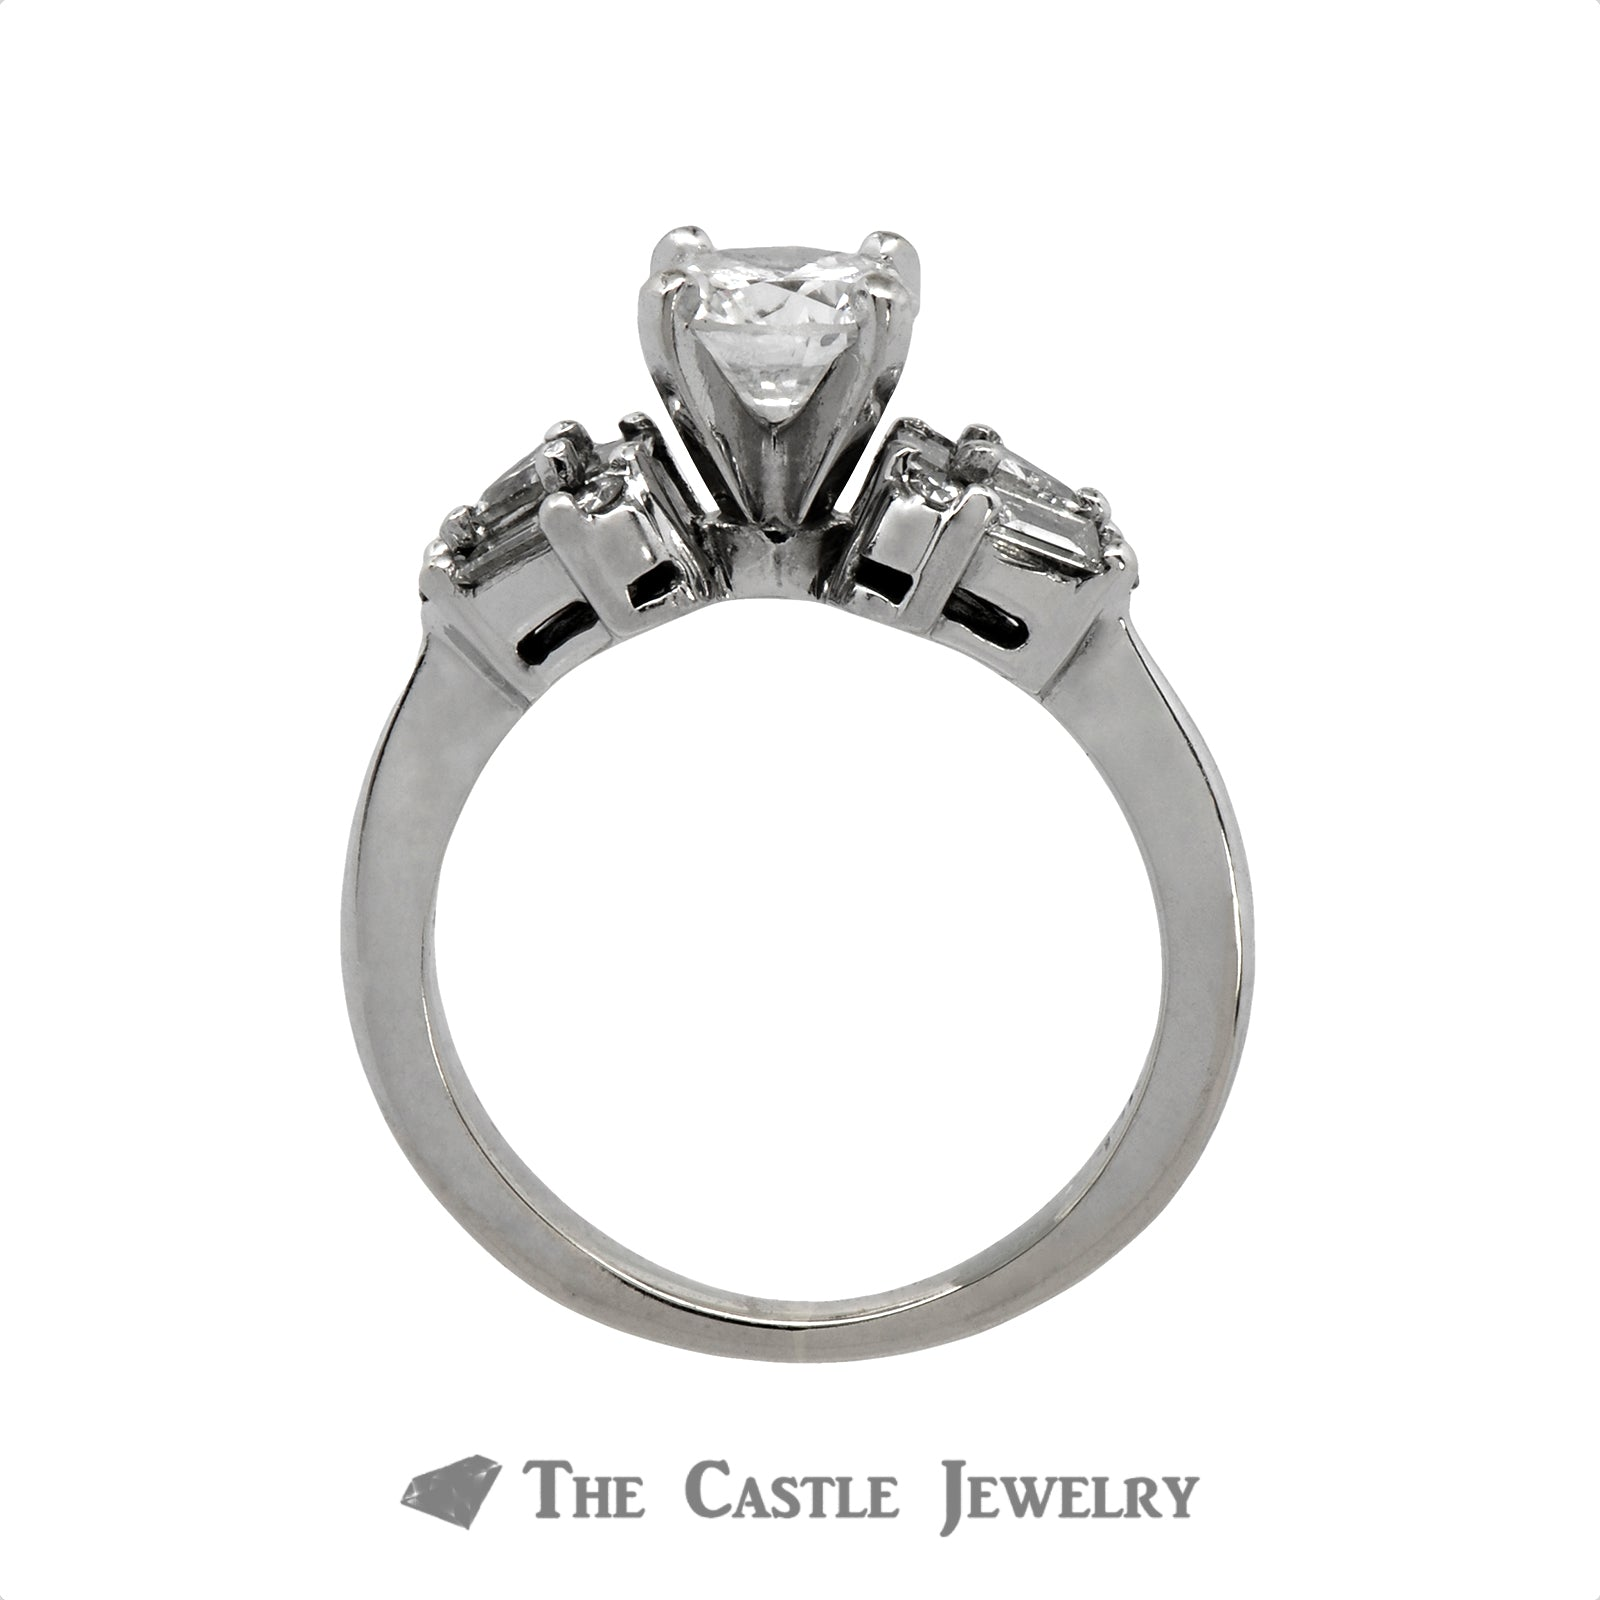 1.25cttw Diamond Engagement Ring with Baguette, Trillion and Round Cut Accents in 14k White Gold-1